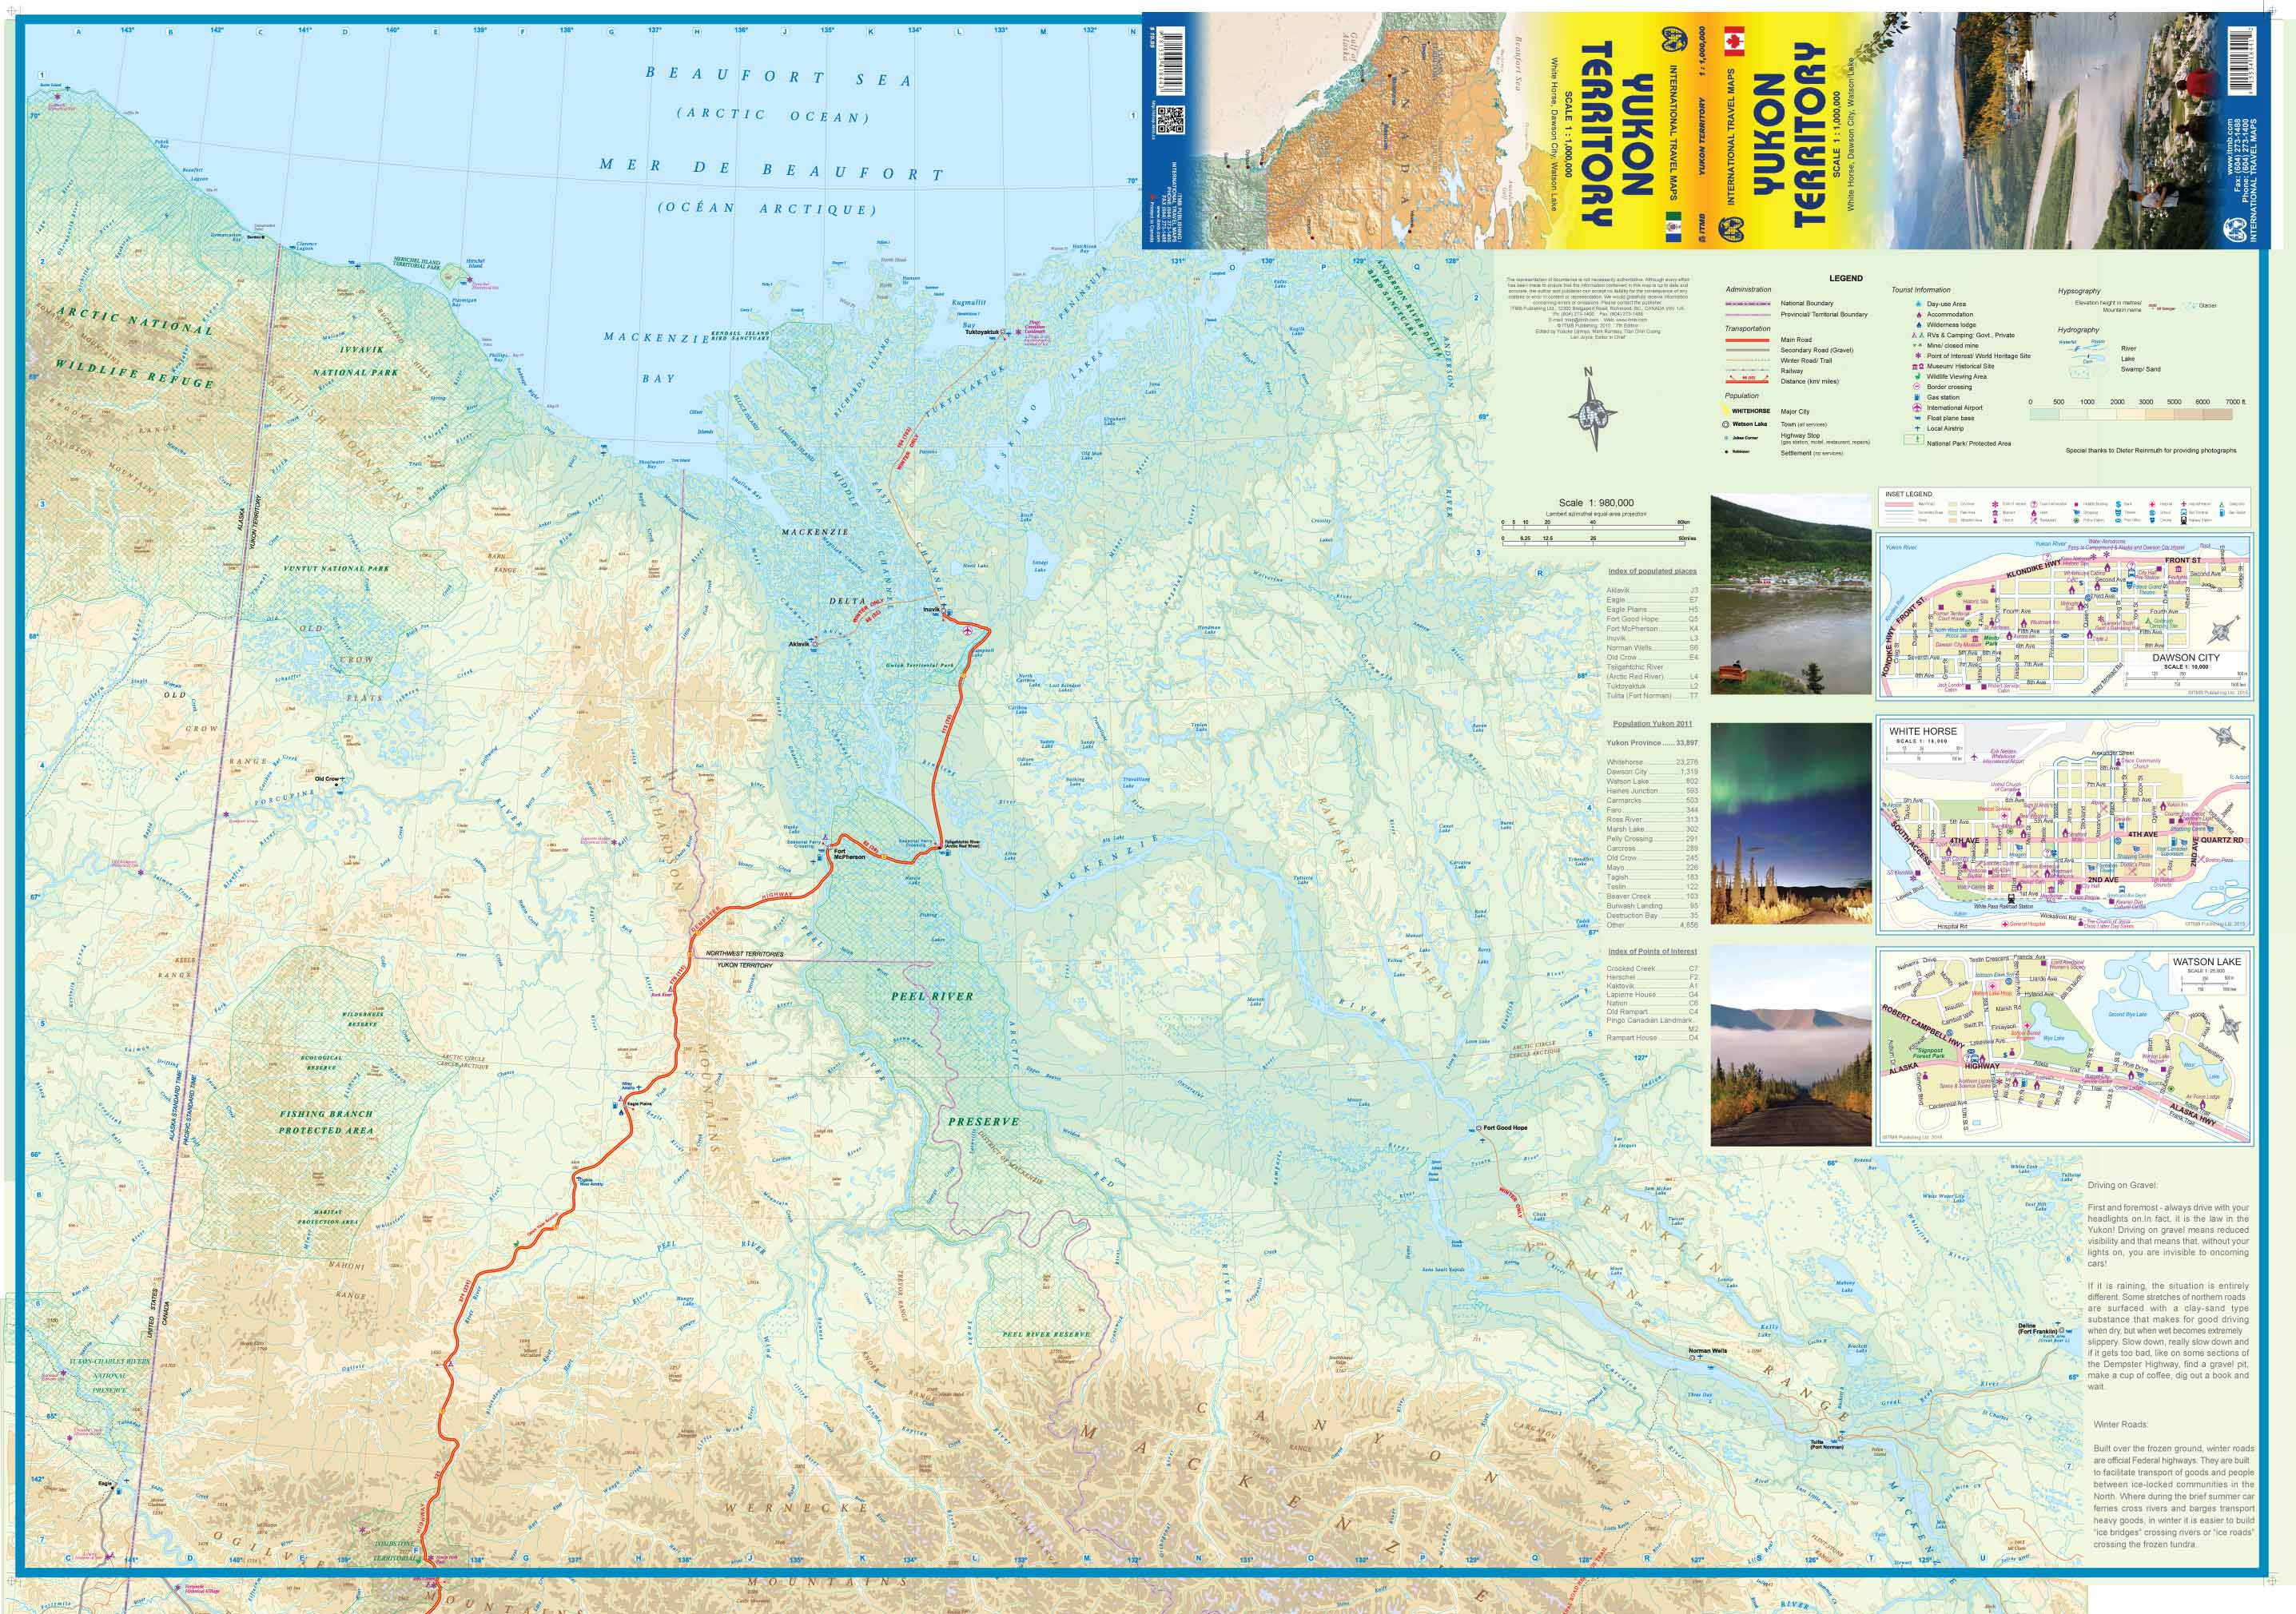 Maps for travel city maps road maps guides globes topographic preview click to enlarge sciox Image collections